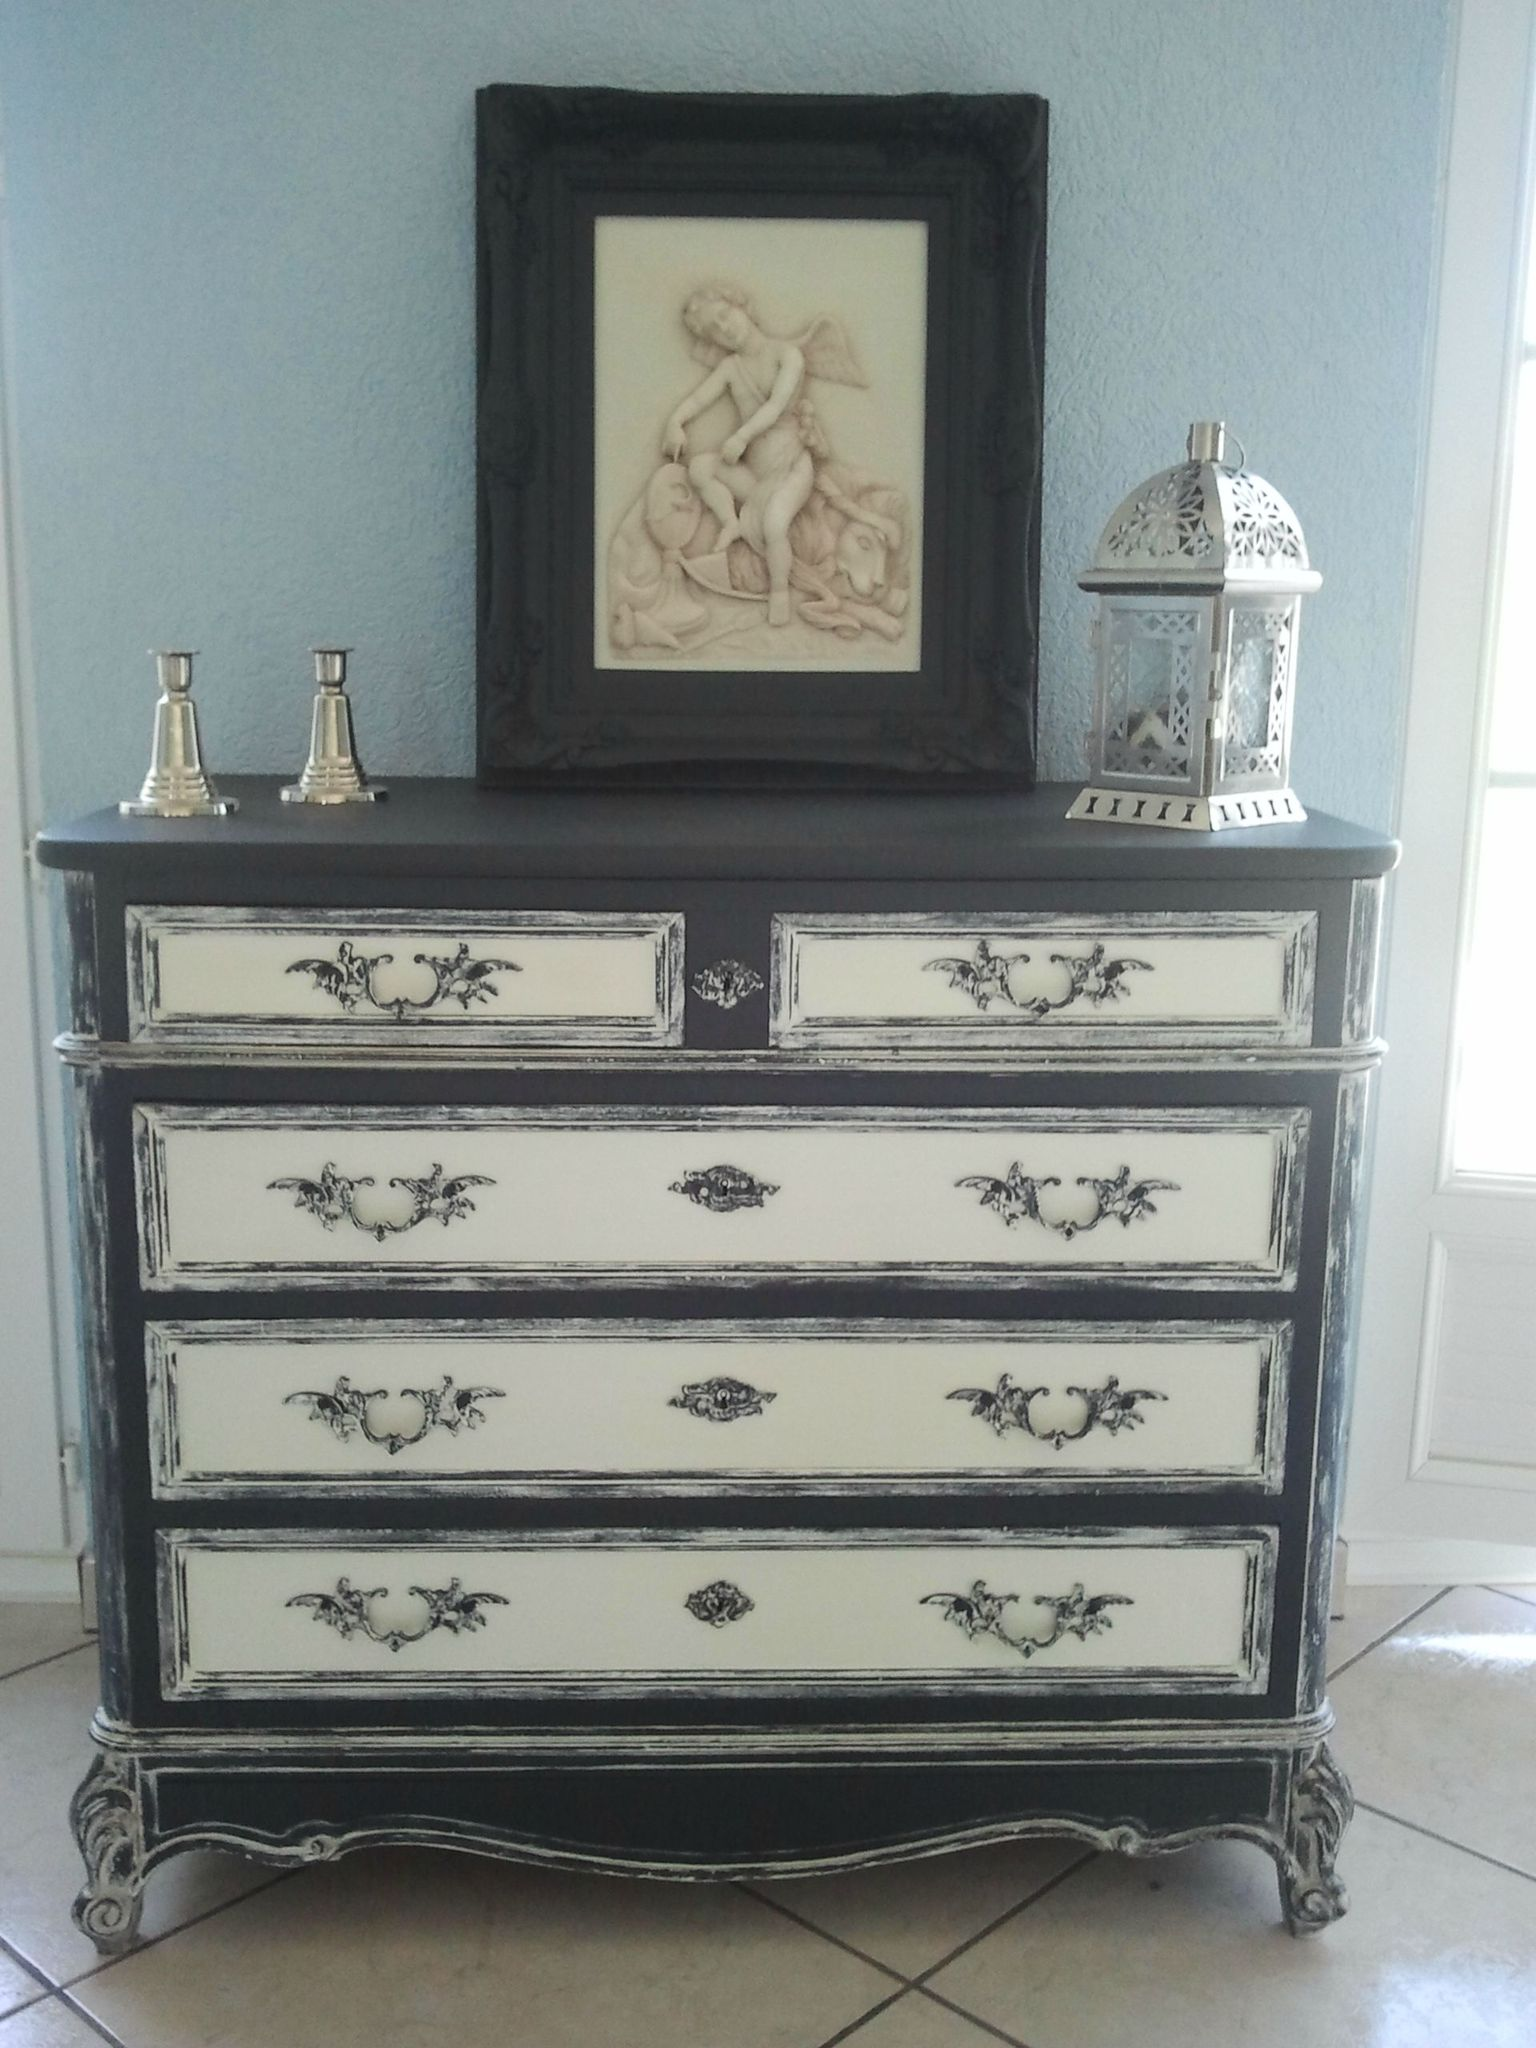 Meubles Anciens Commodes Commode Relooking Des Meubles Anciens